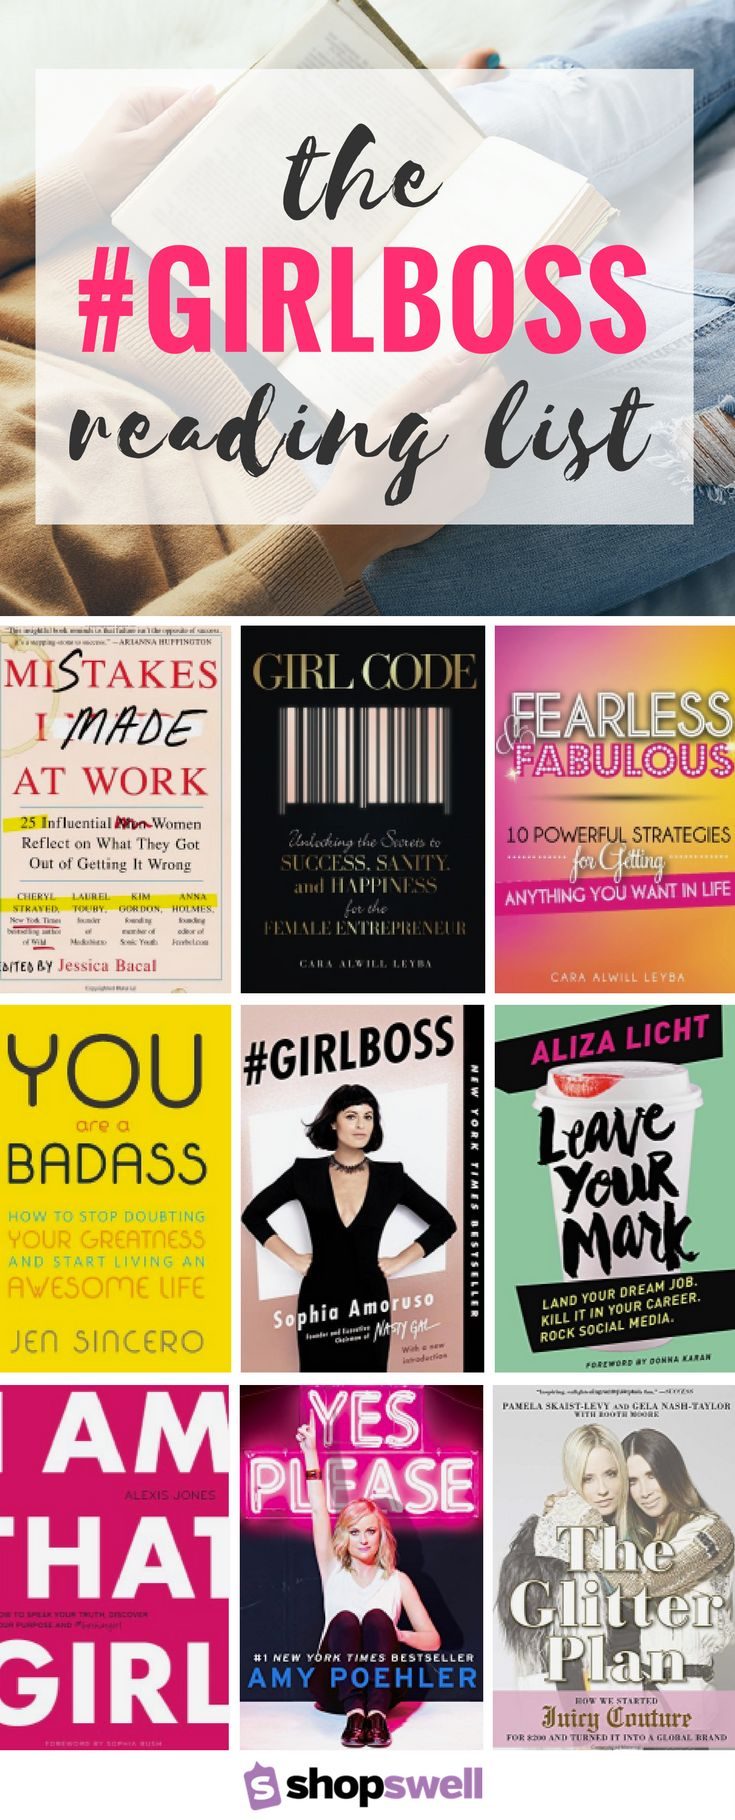 Written by strong women, these books will inspire you to never give up on your daydream and kill it in your career. #GirlBoss